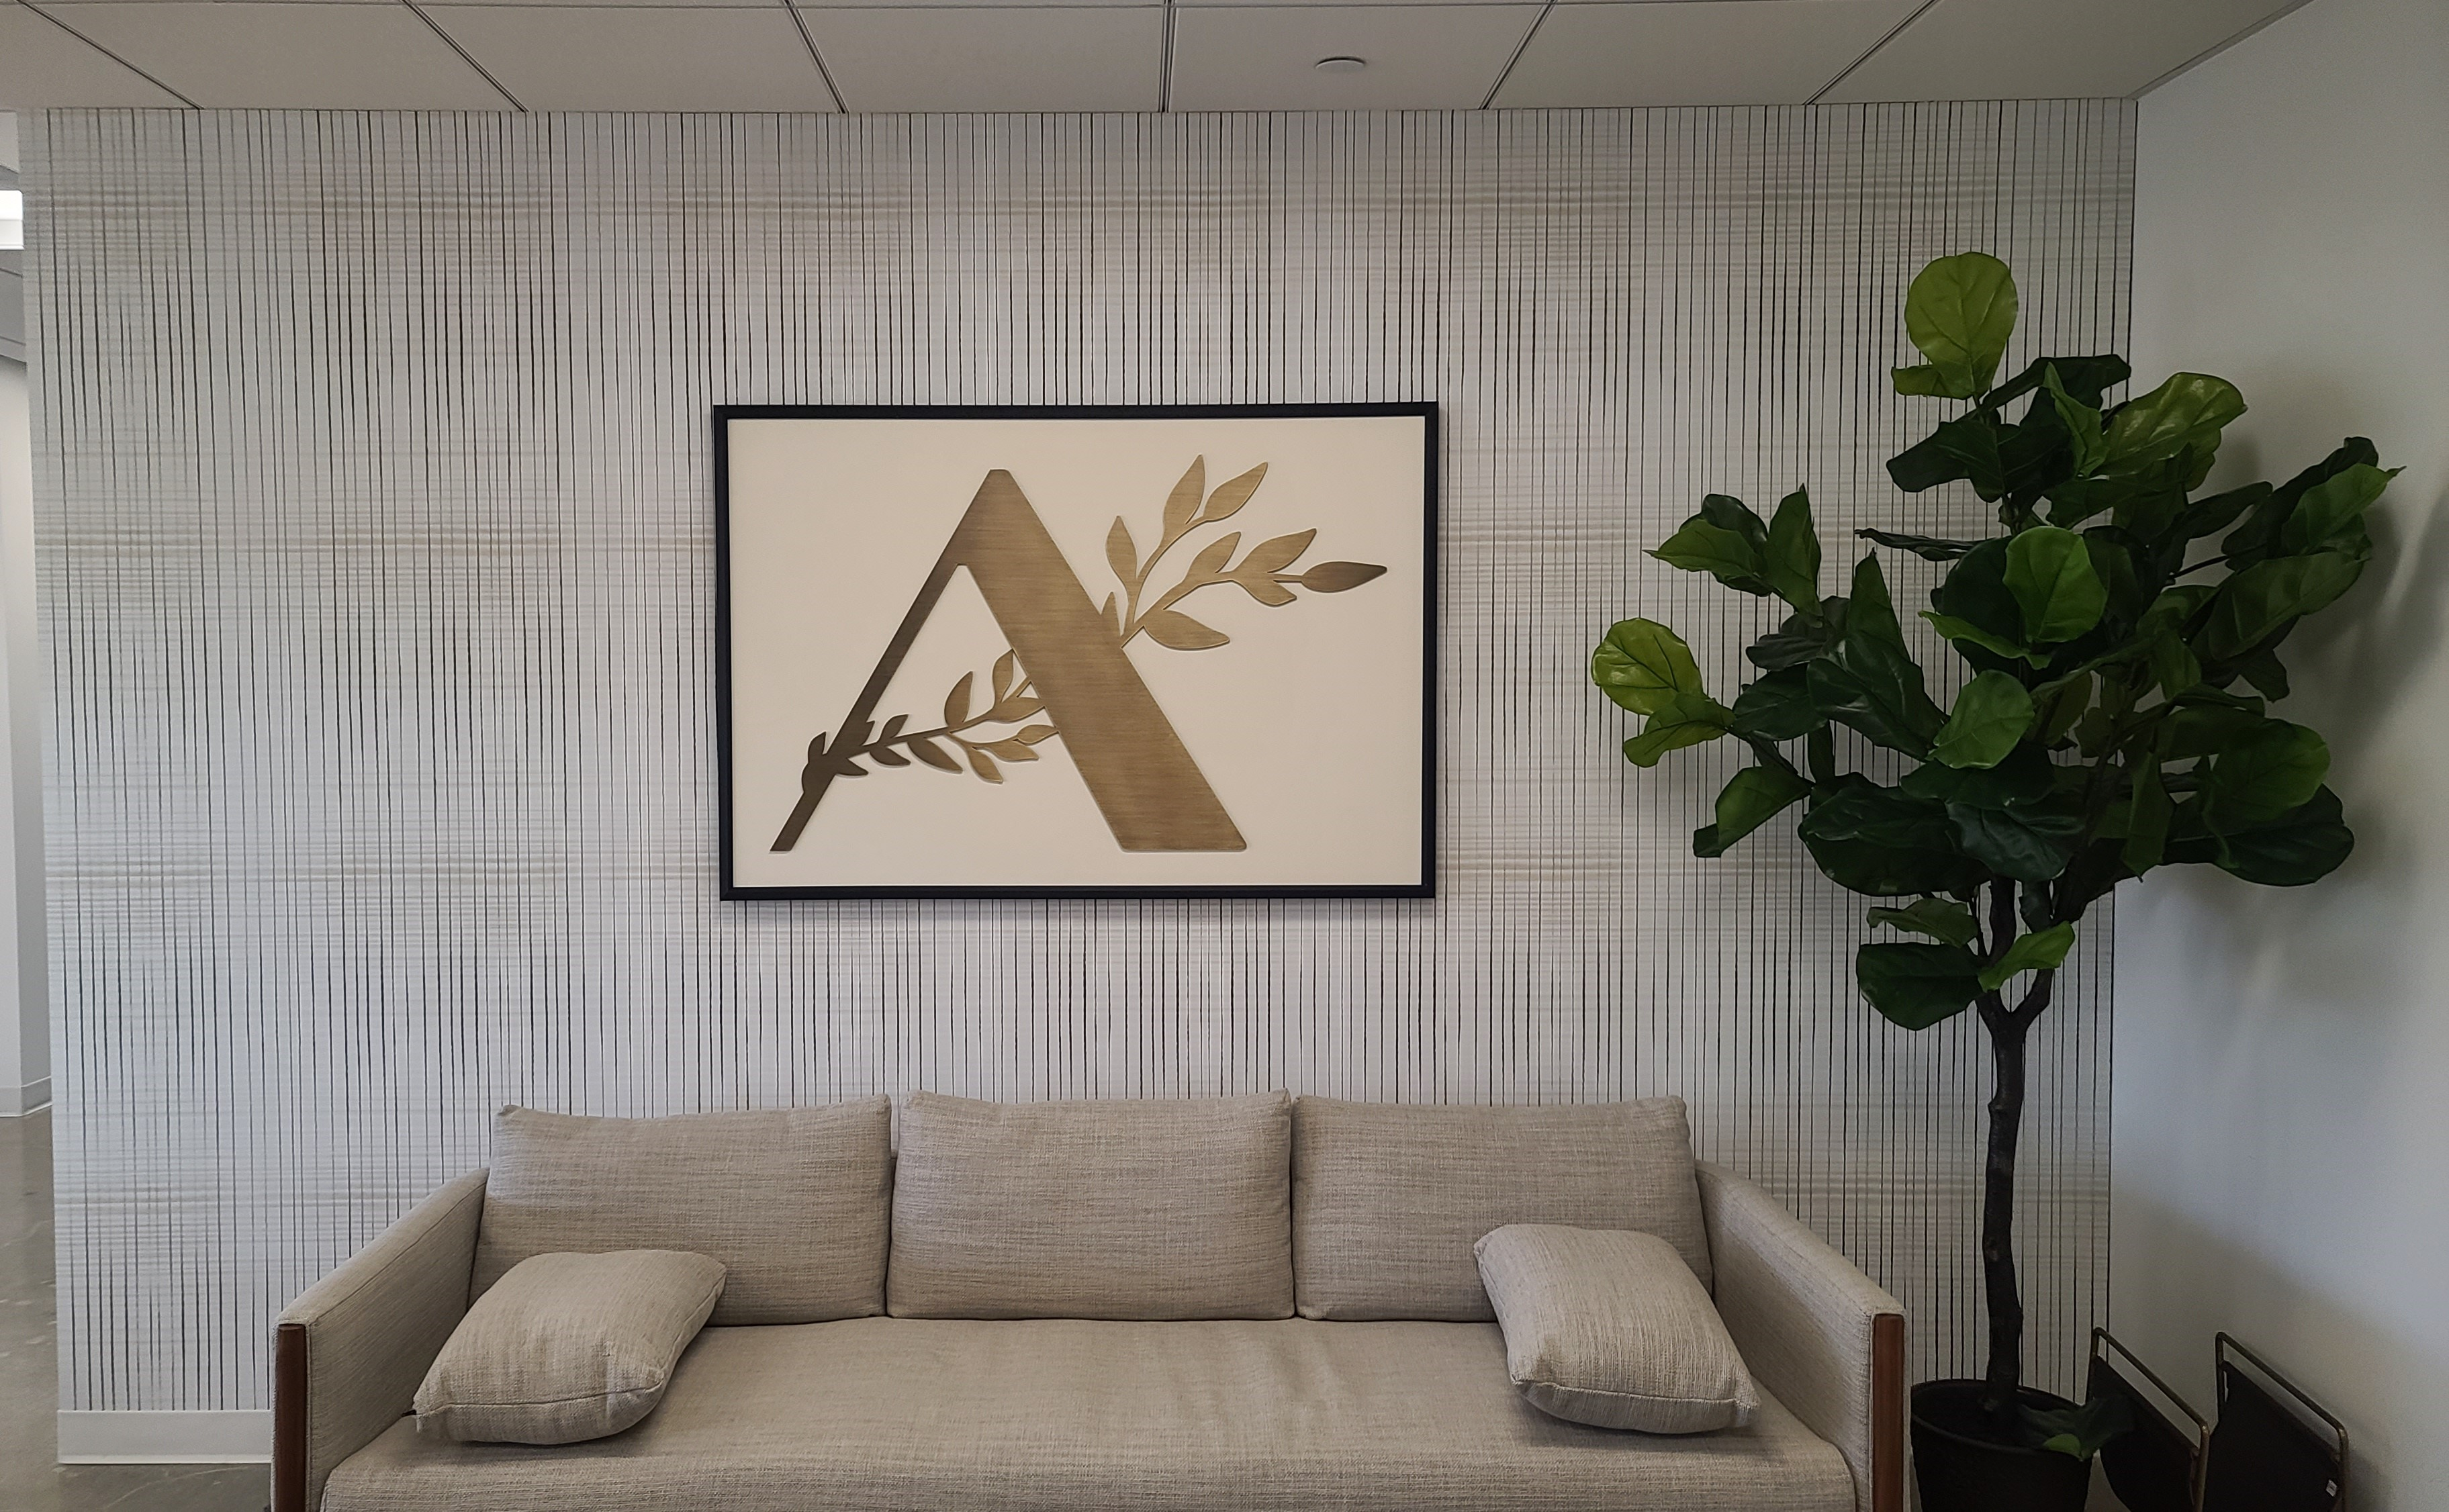 We are proud to present this lobby sign that serves as the eye-catching centerpiece for Abundance Capital in West Los Angeles!